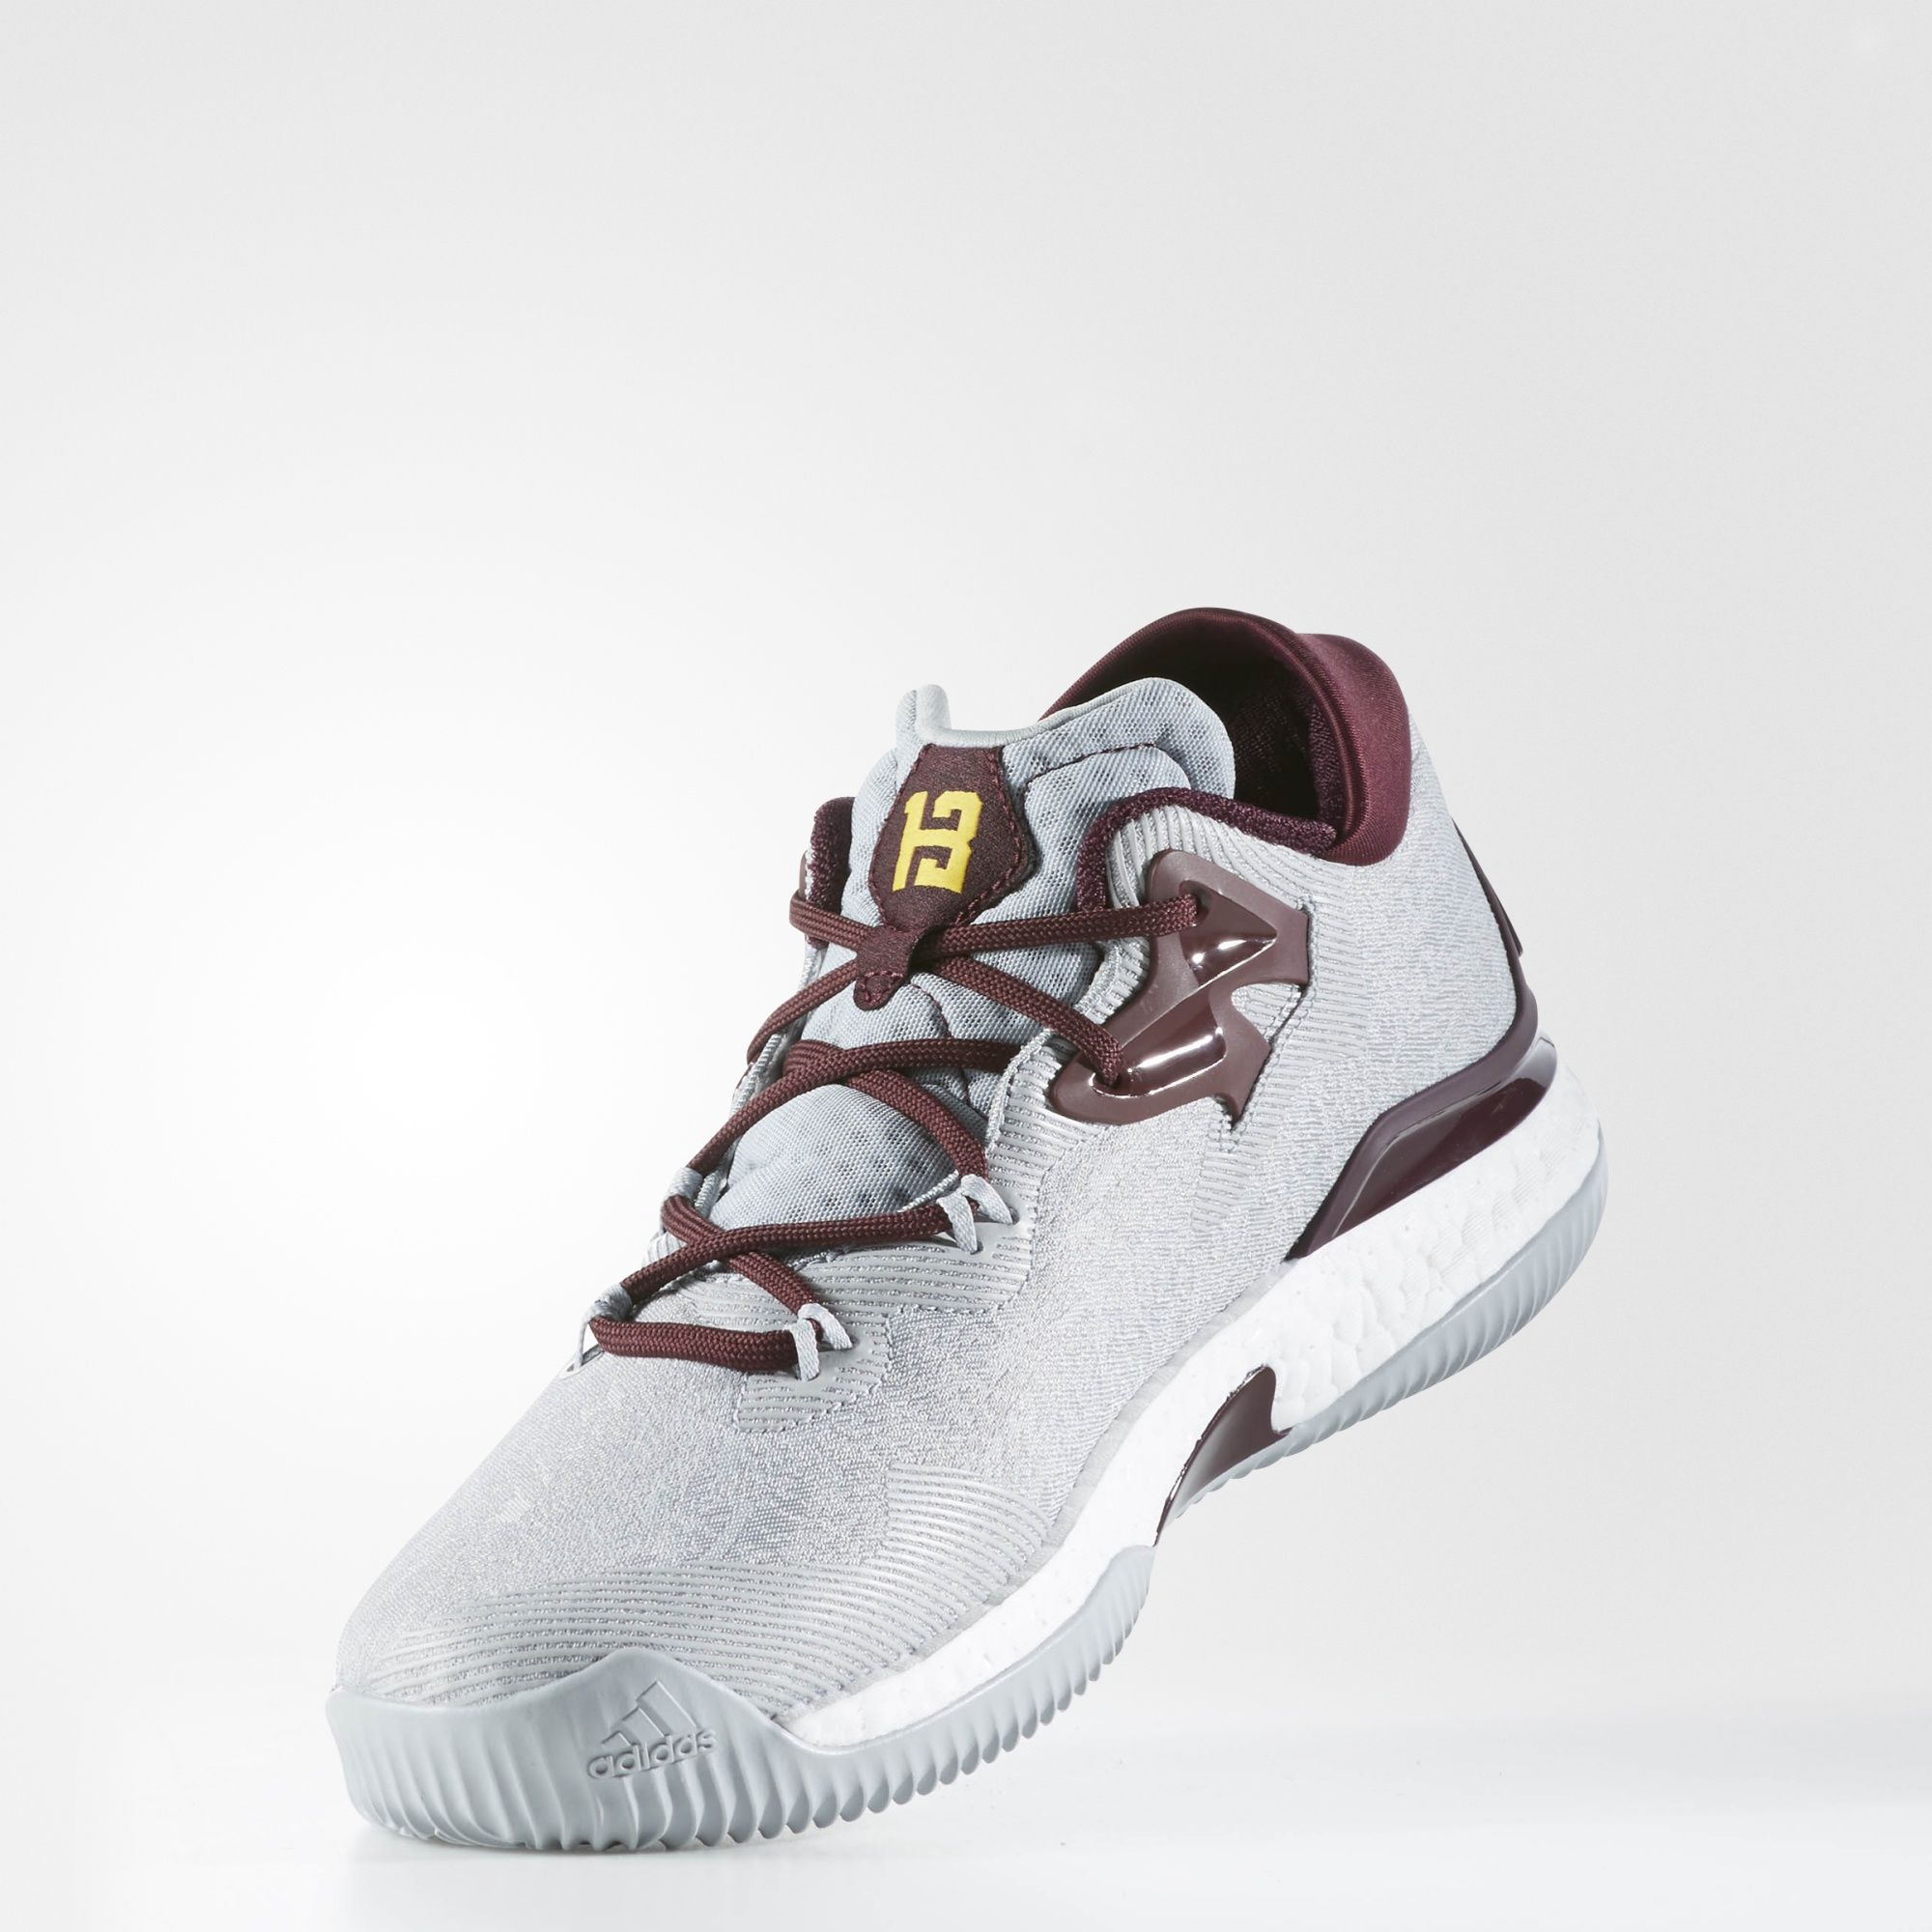 Another adidas CrazyLight Boost 2016 James Harden PE